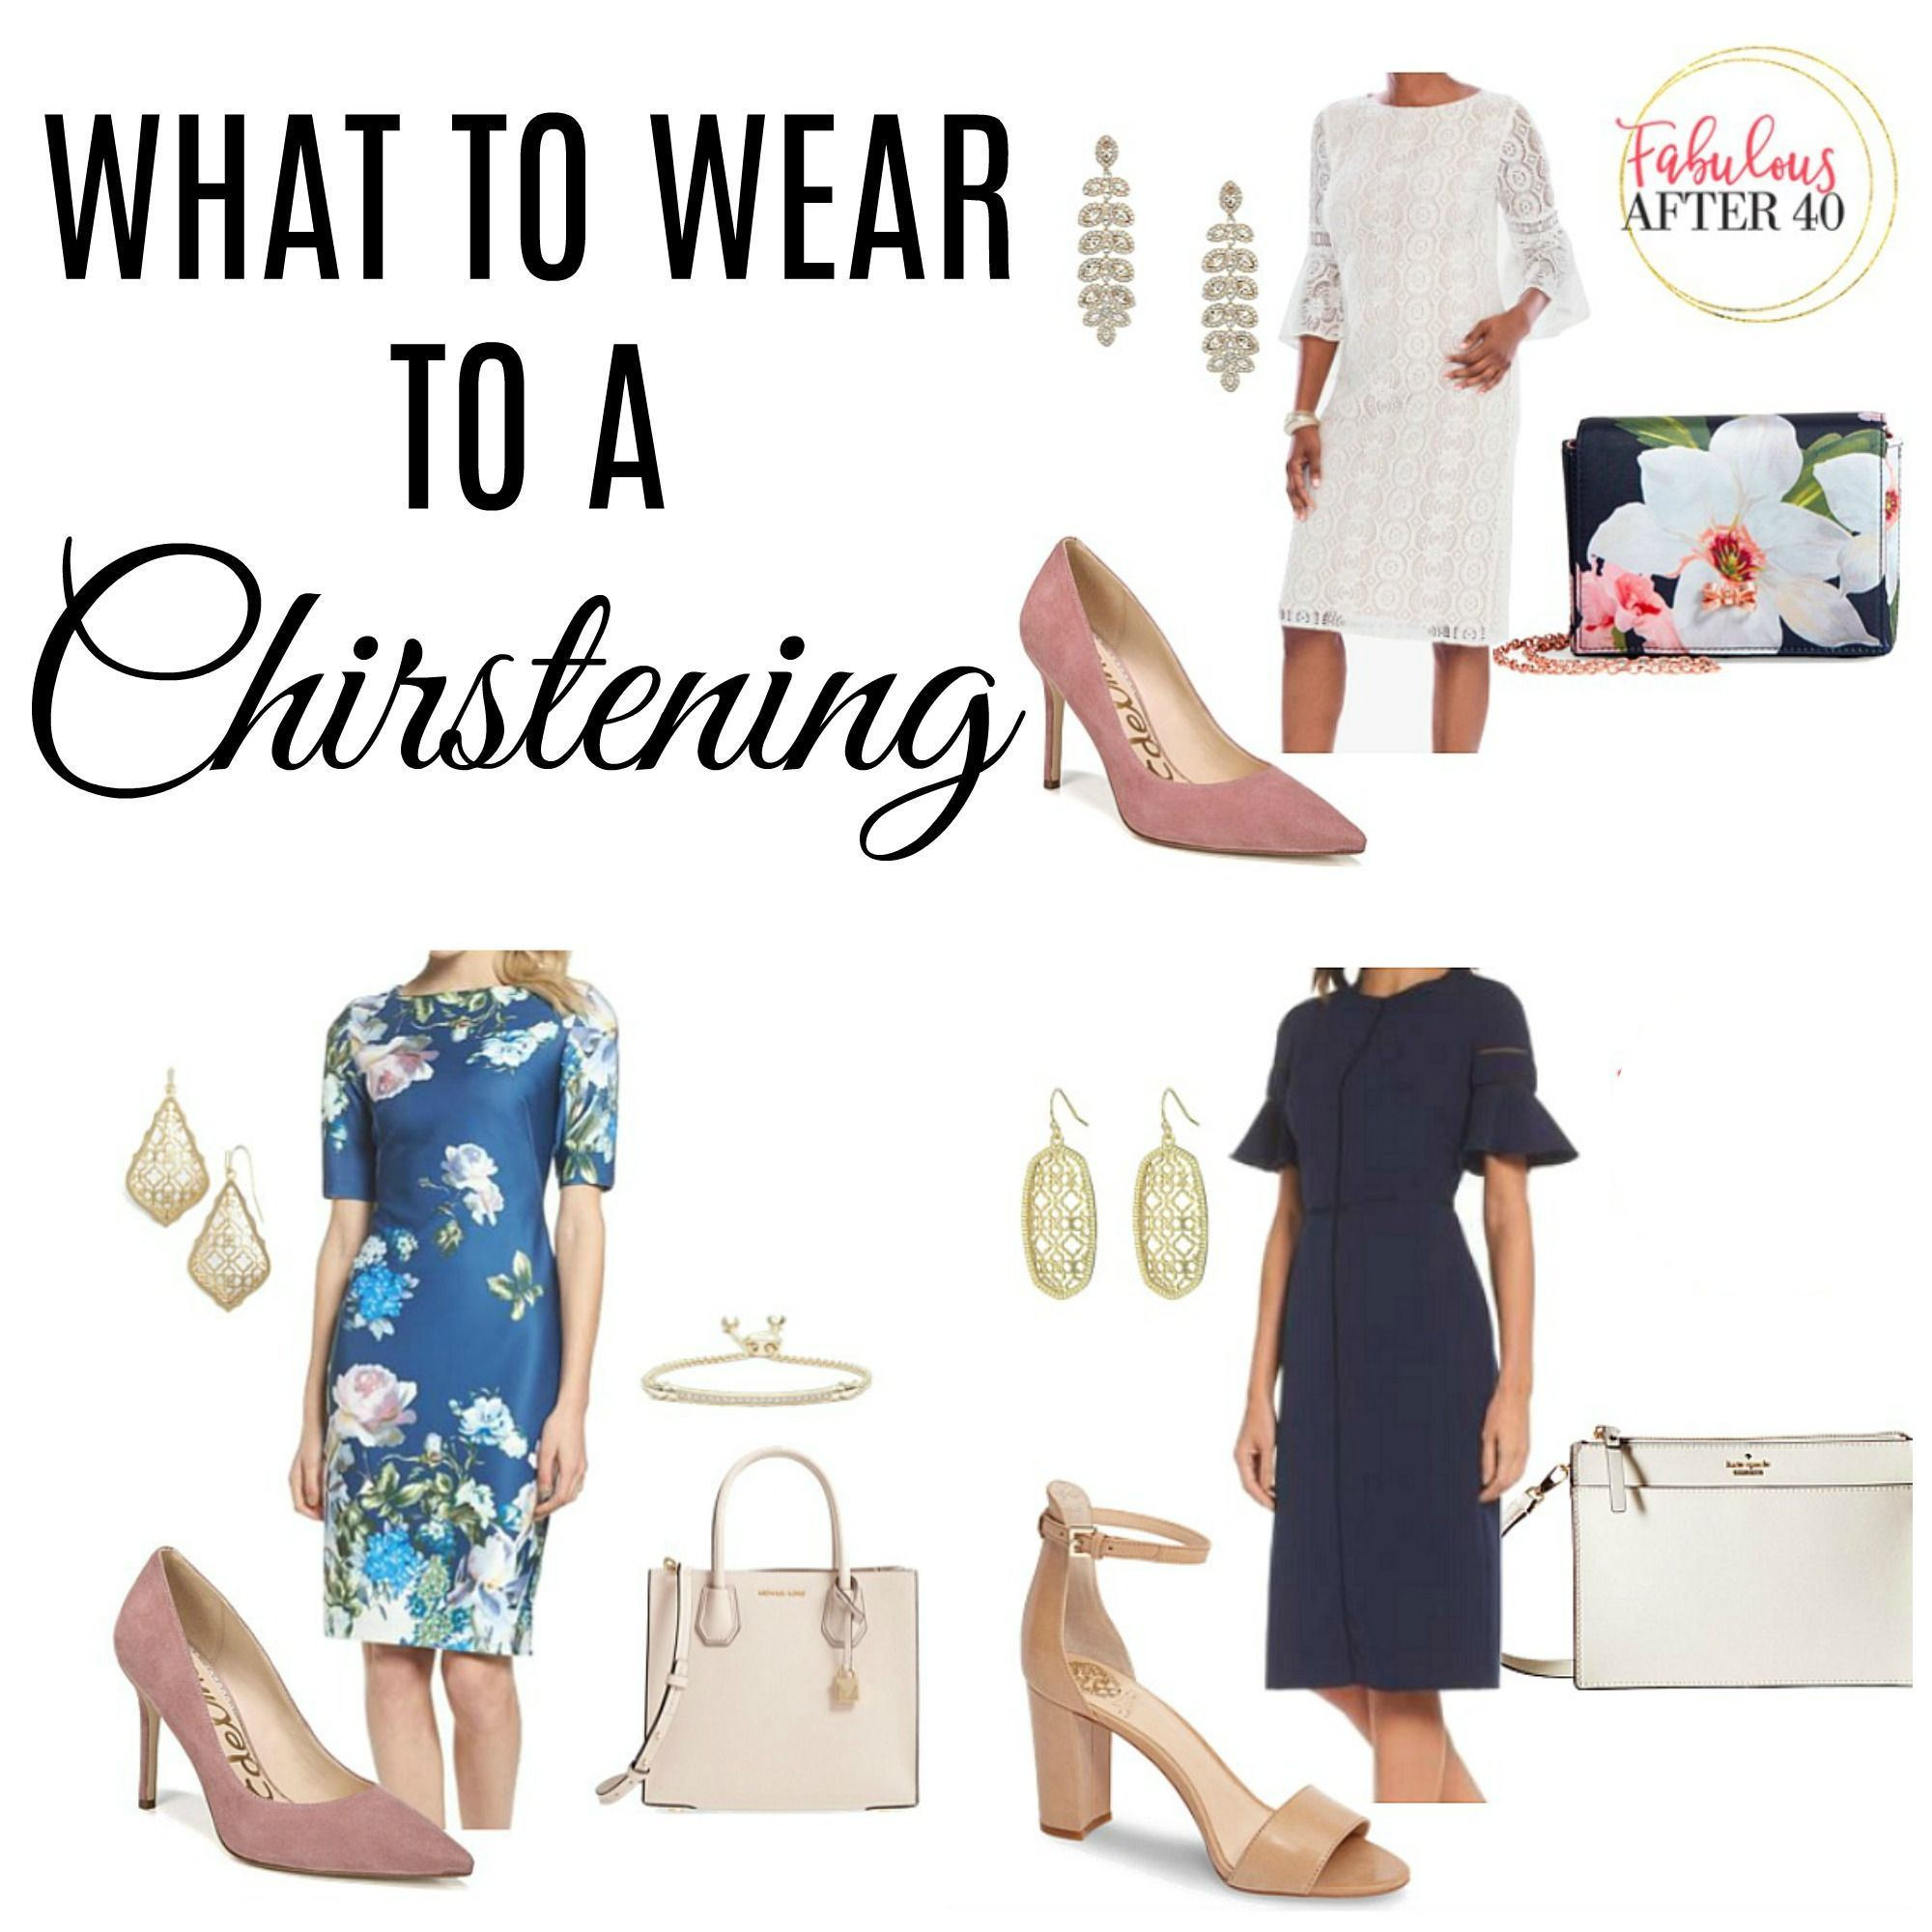 Best dress to wear to a baptism  What To Wear To A Christening  Fabulous After  styleover